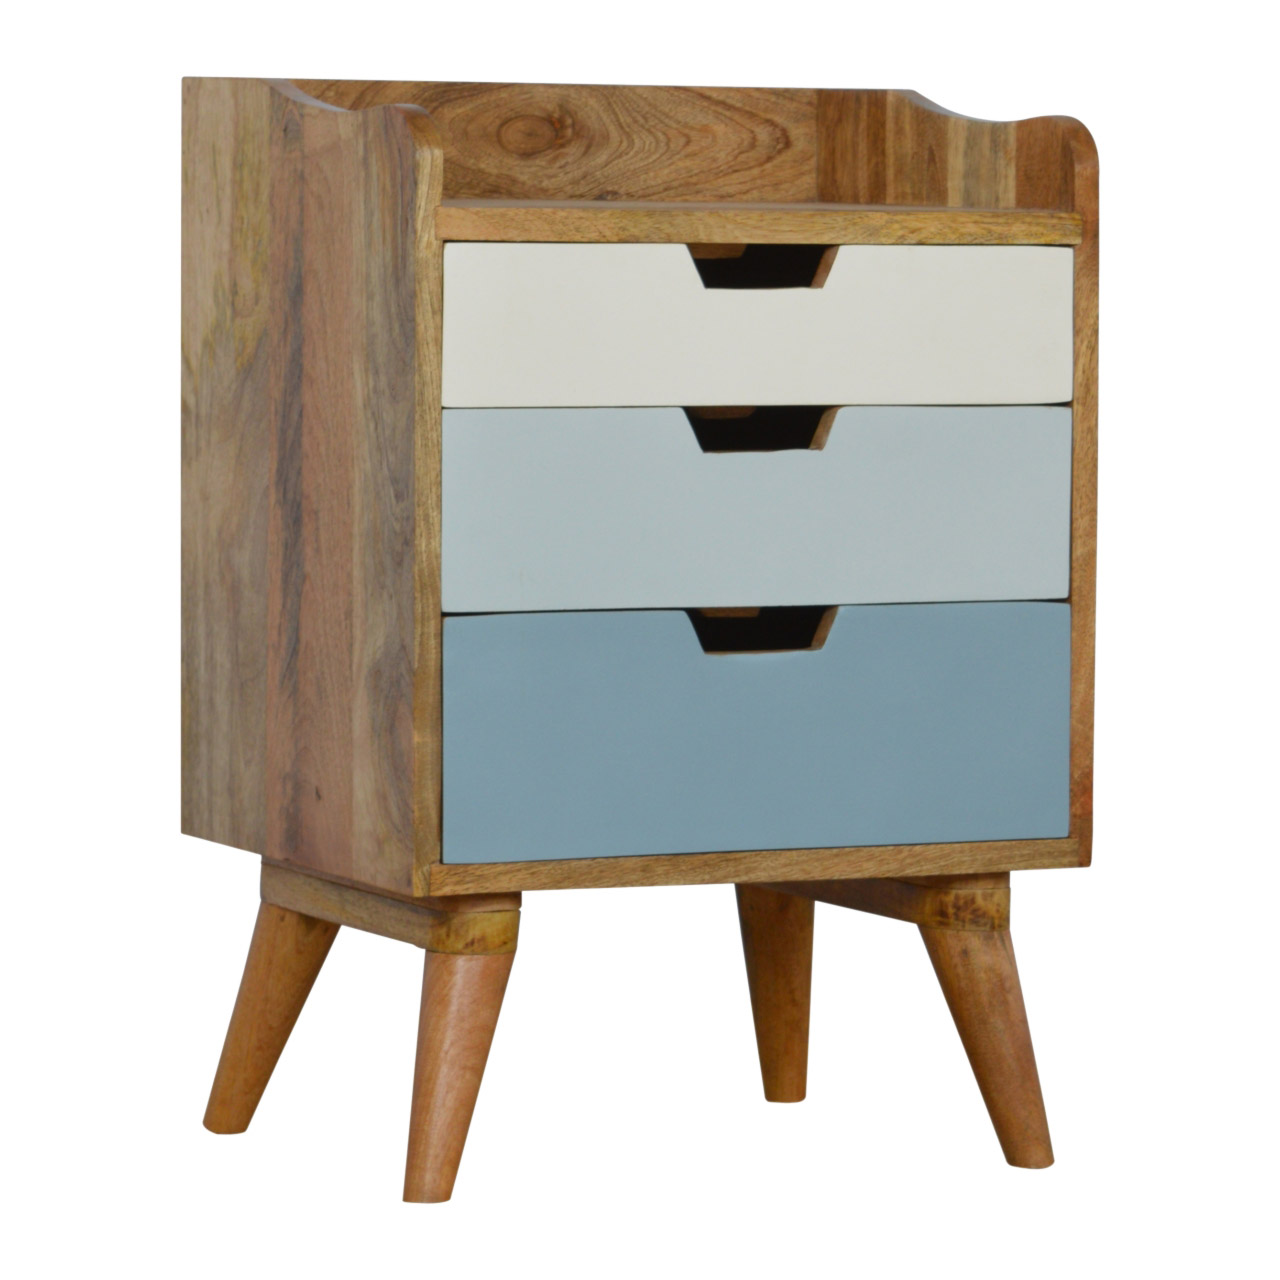 The Home Furnishings Company Nordic Blue and White 3 Drawer Bedside Table